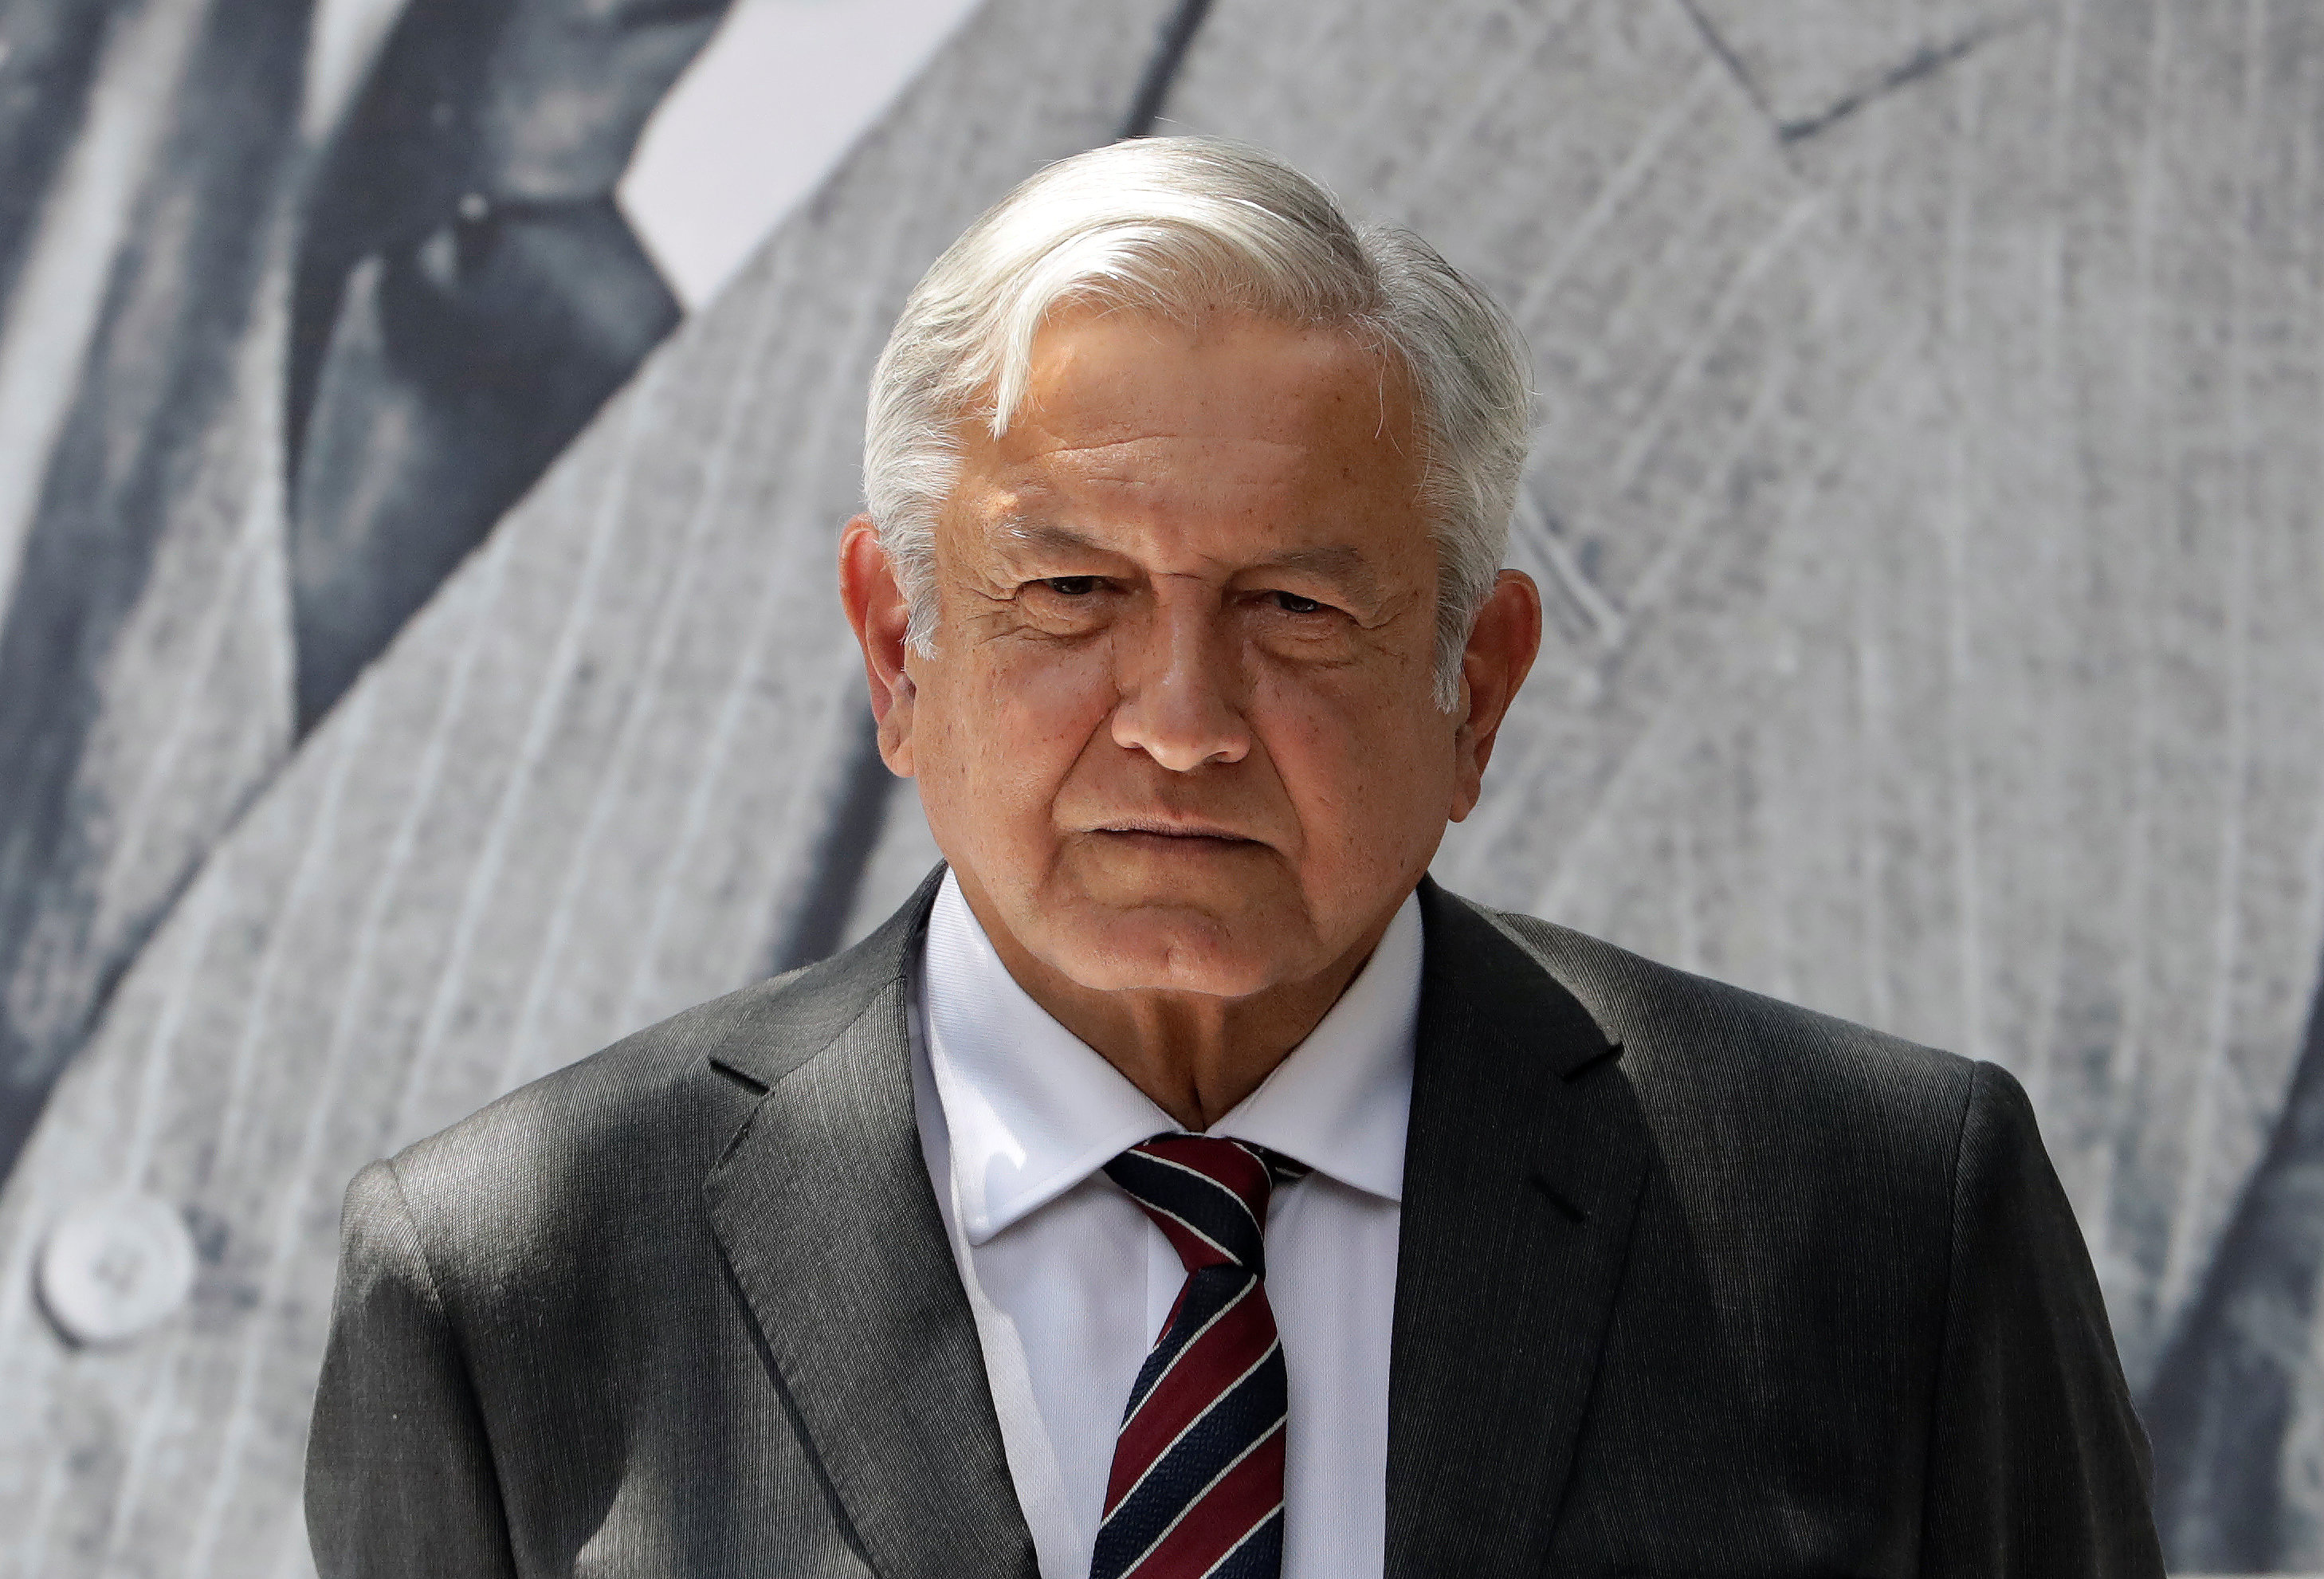 washingtonpost.com - Josh Partlow, Nick Miroff - Mexico's next president could be on a collision course with Trump over immigration